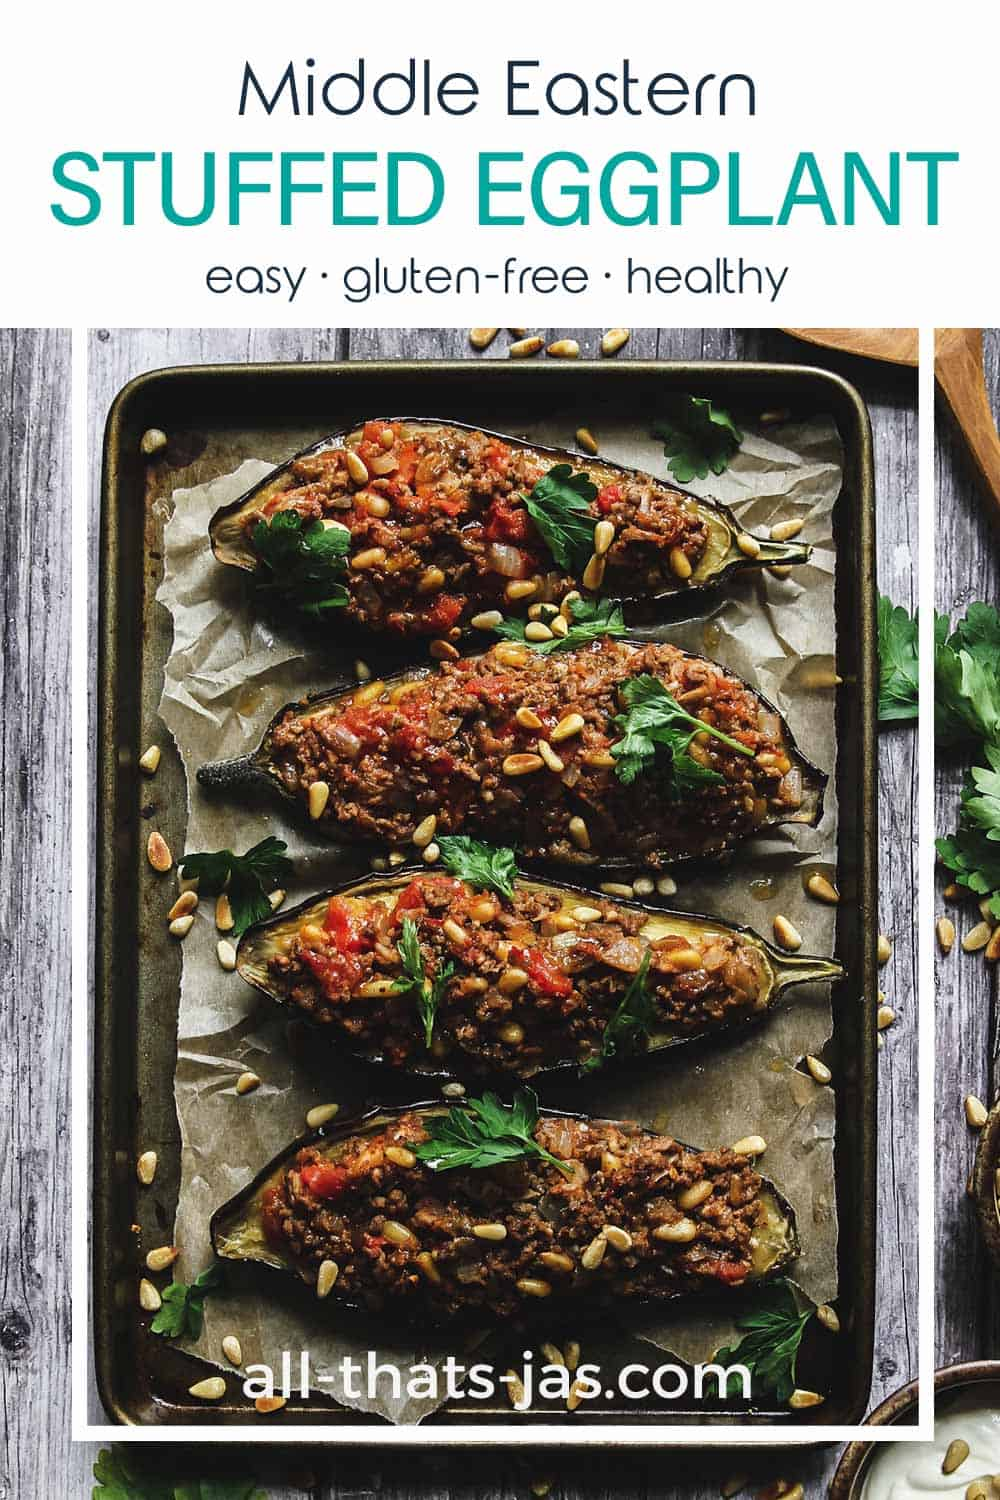 An overhead view of stuffed eggplants on a baking sheet with text overlay.